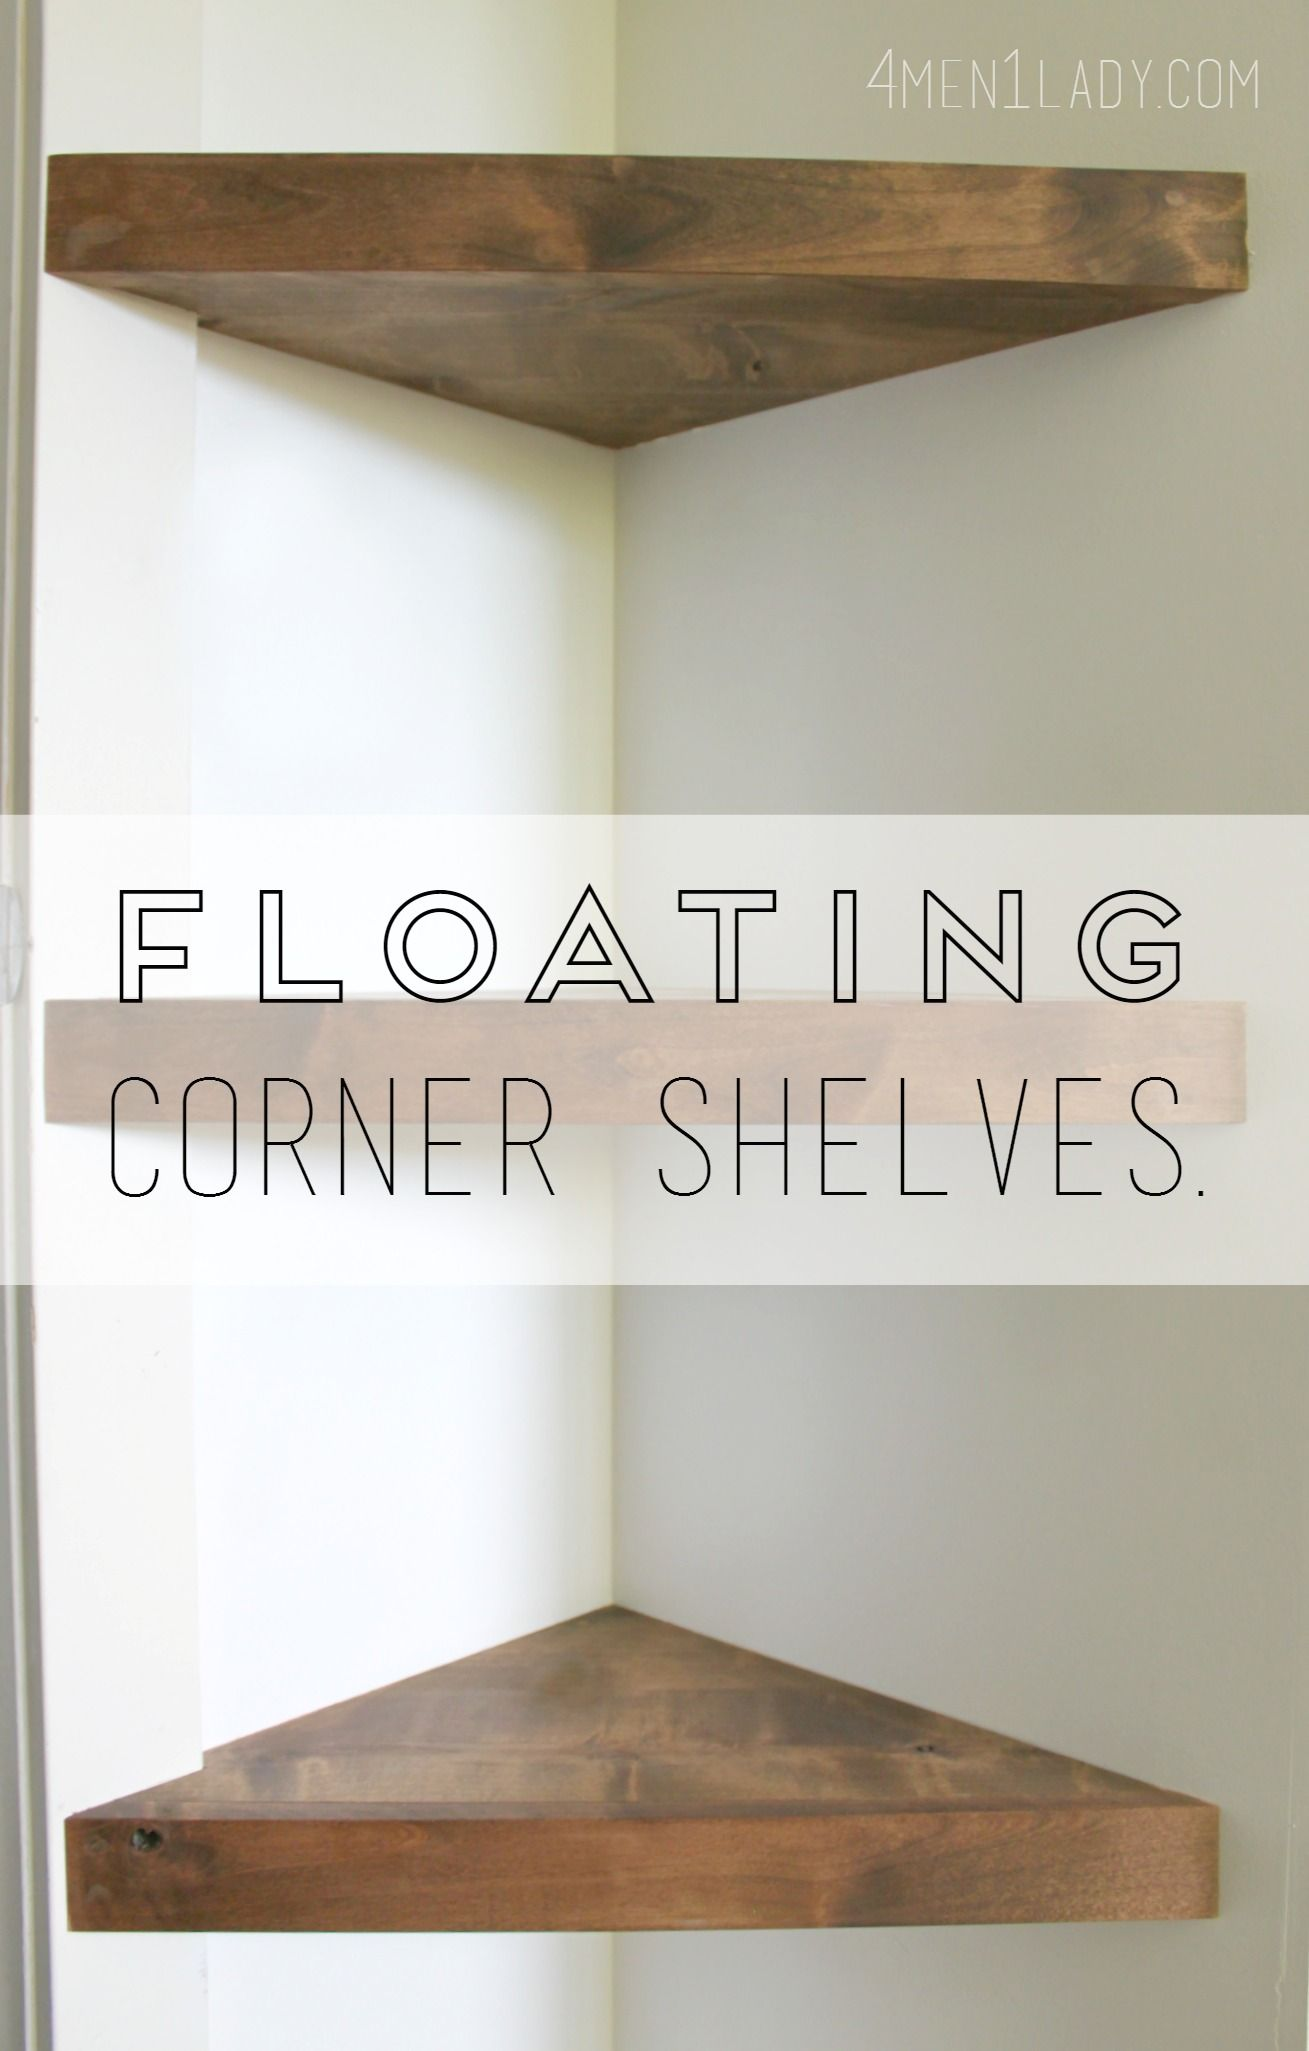 How To Hang Floating Shelves How To Make Corner Floating Shelves  Detailed Instructions  Maybe